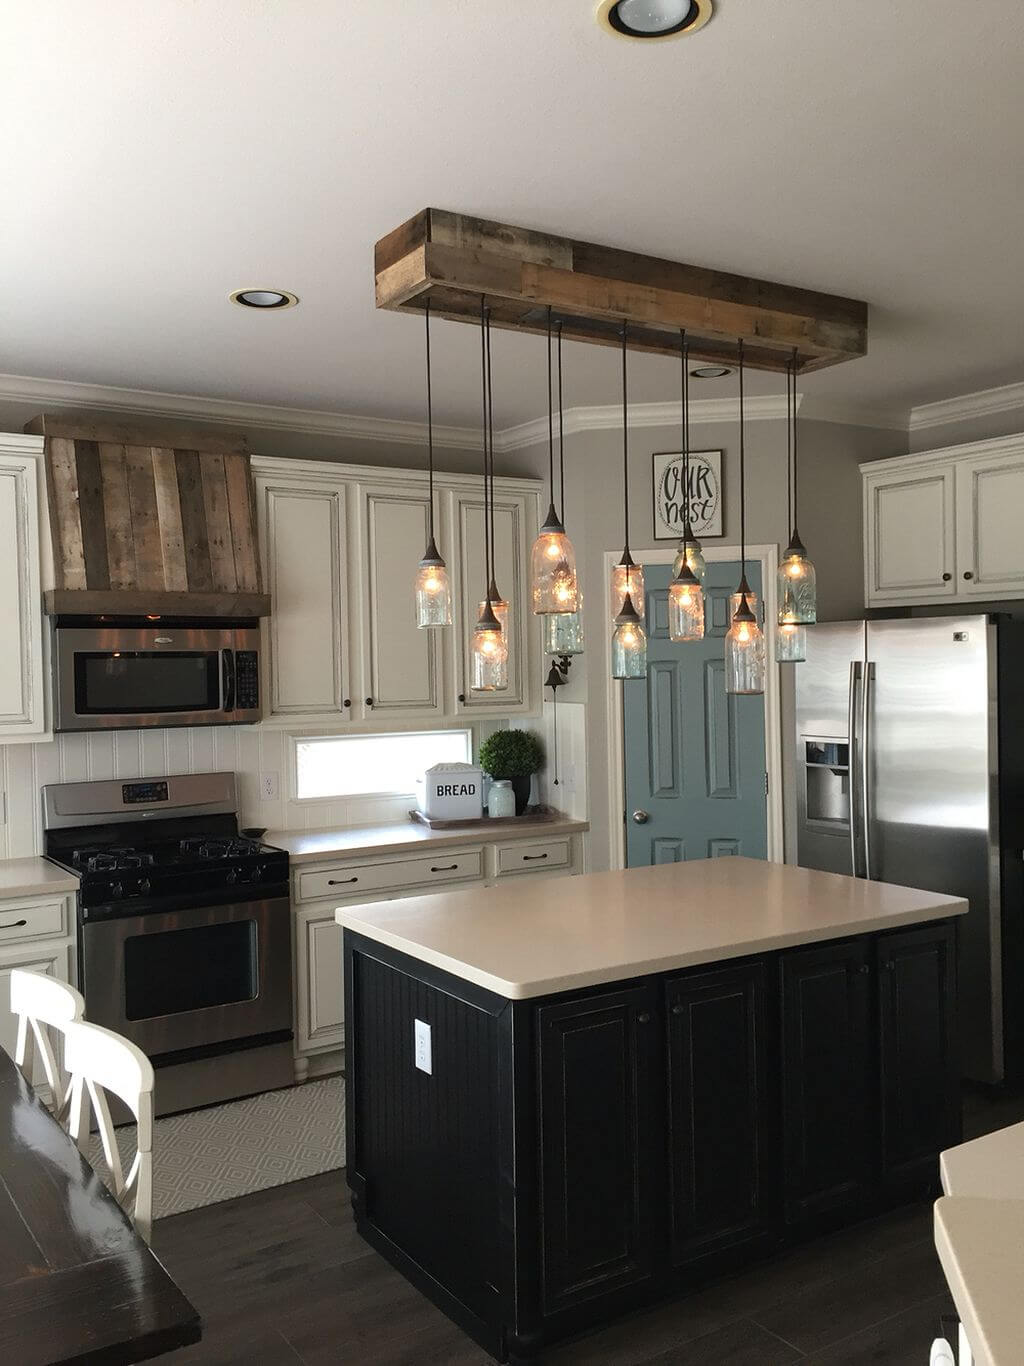 36 Best Farmhouse Lighting Ideas And Designs For 2020